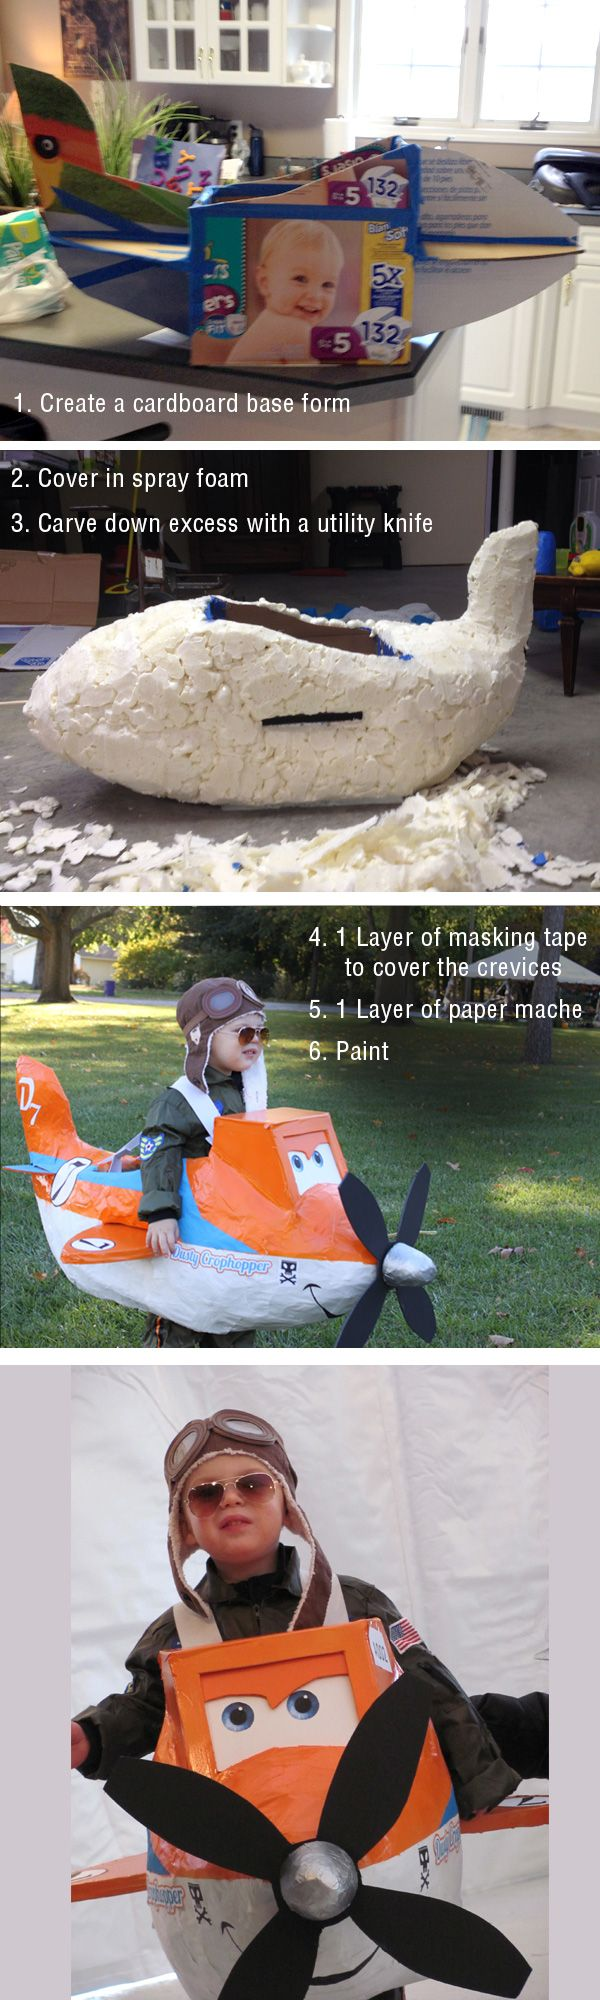 Spray foam...duh!!! Disney's Planes Dusty Crophopper Costume How-To.